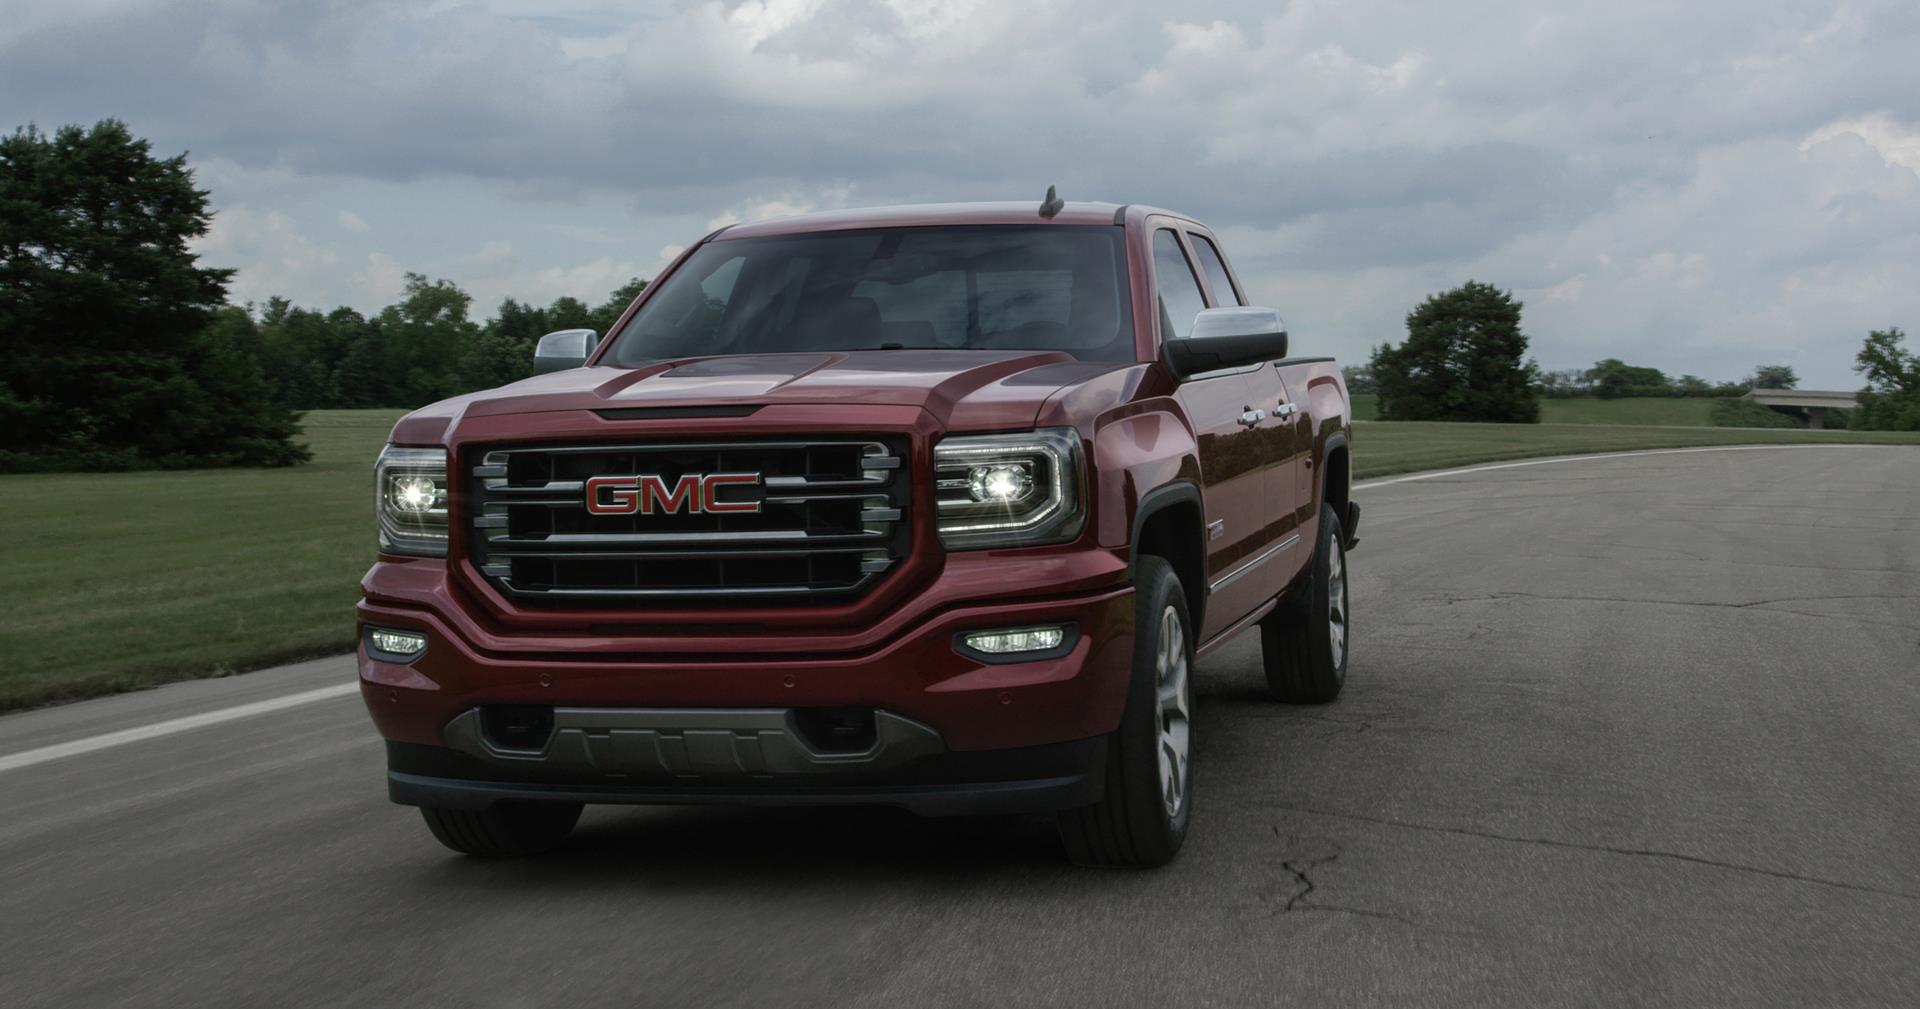 2016 gmc sierra all terrain hd. Black Bedroom Furniture Sets. Home Design Ideas